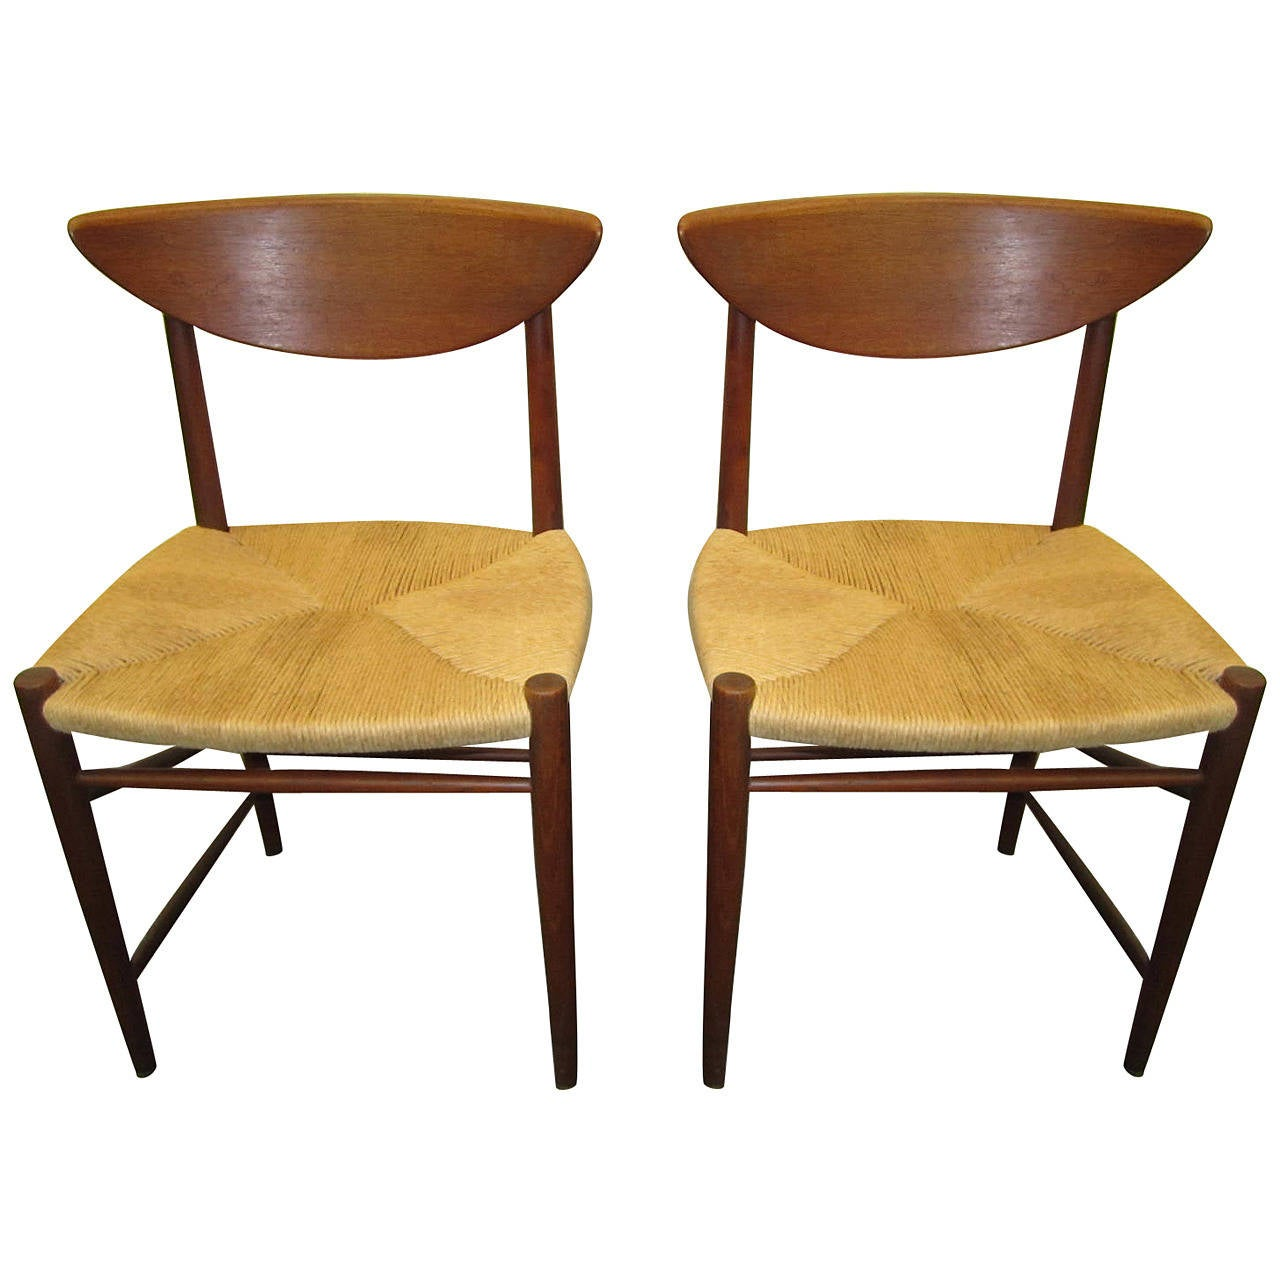 Pair Of Hvidt Molgaard Teak Dining Chairs Mid-century